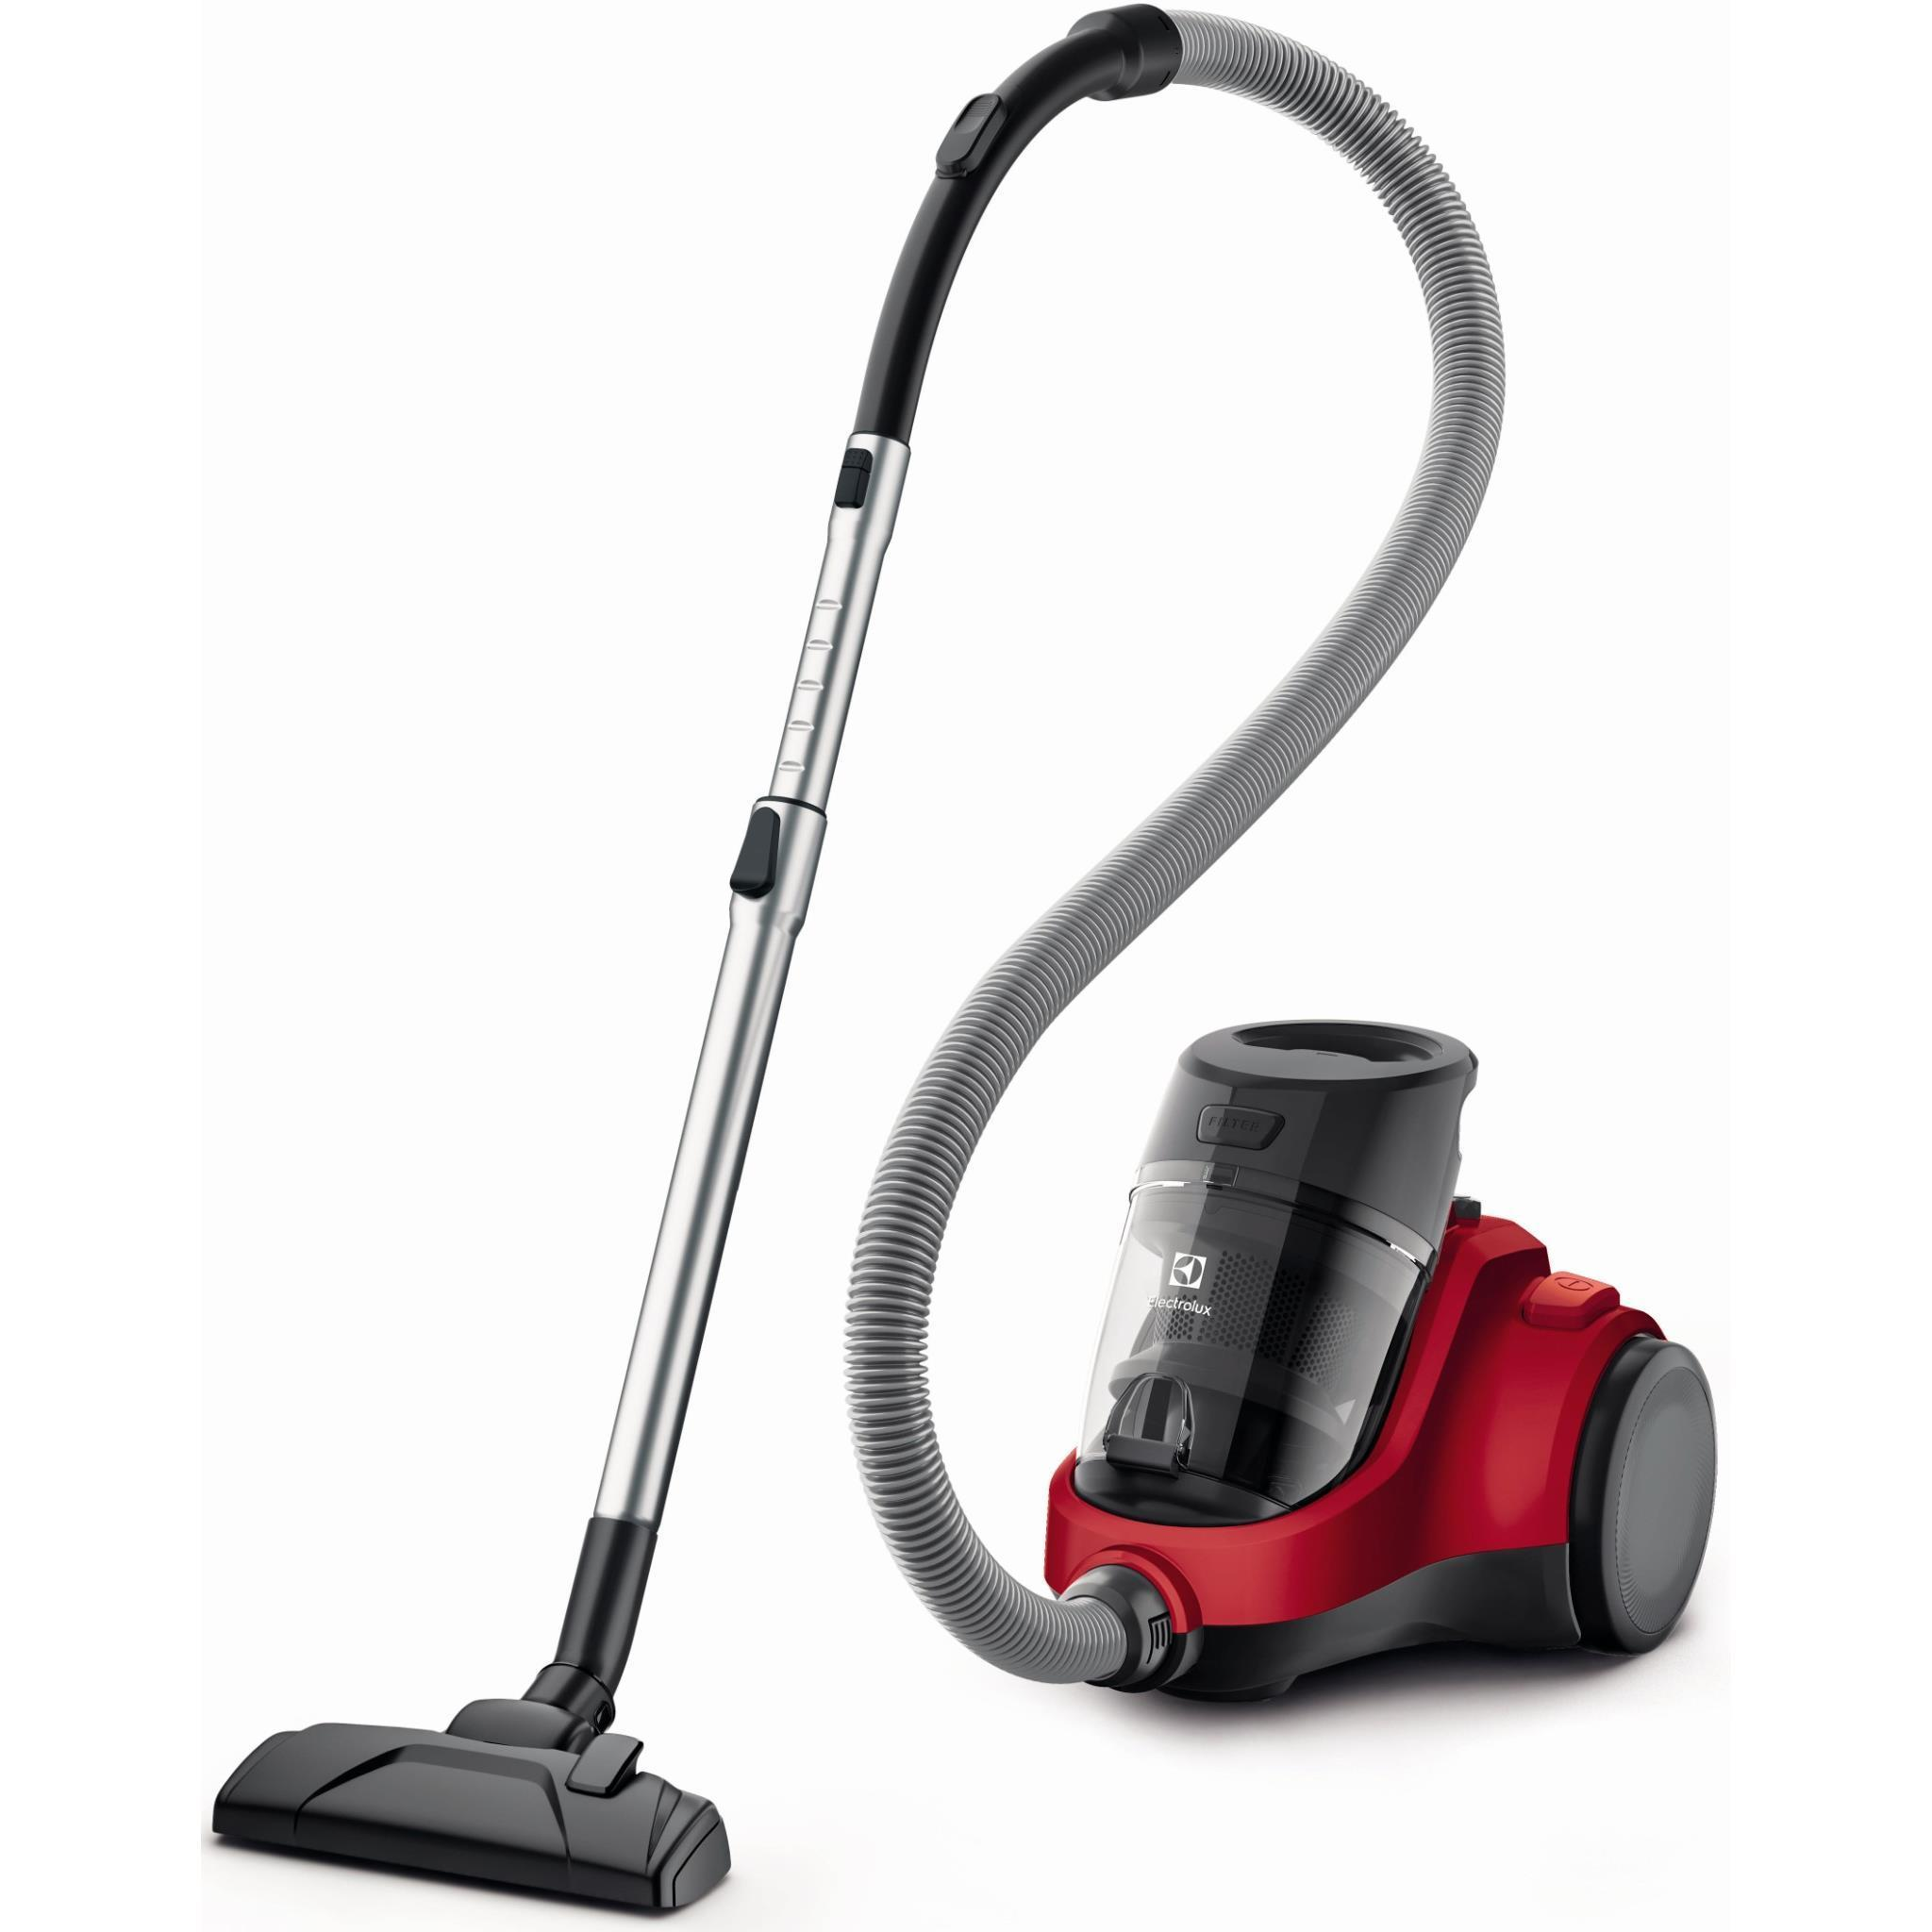 Electrolux Ease C4 Bagless Vacuum Cleaner